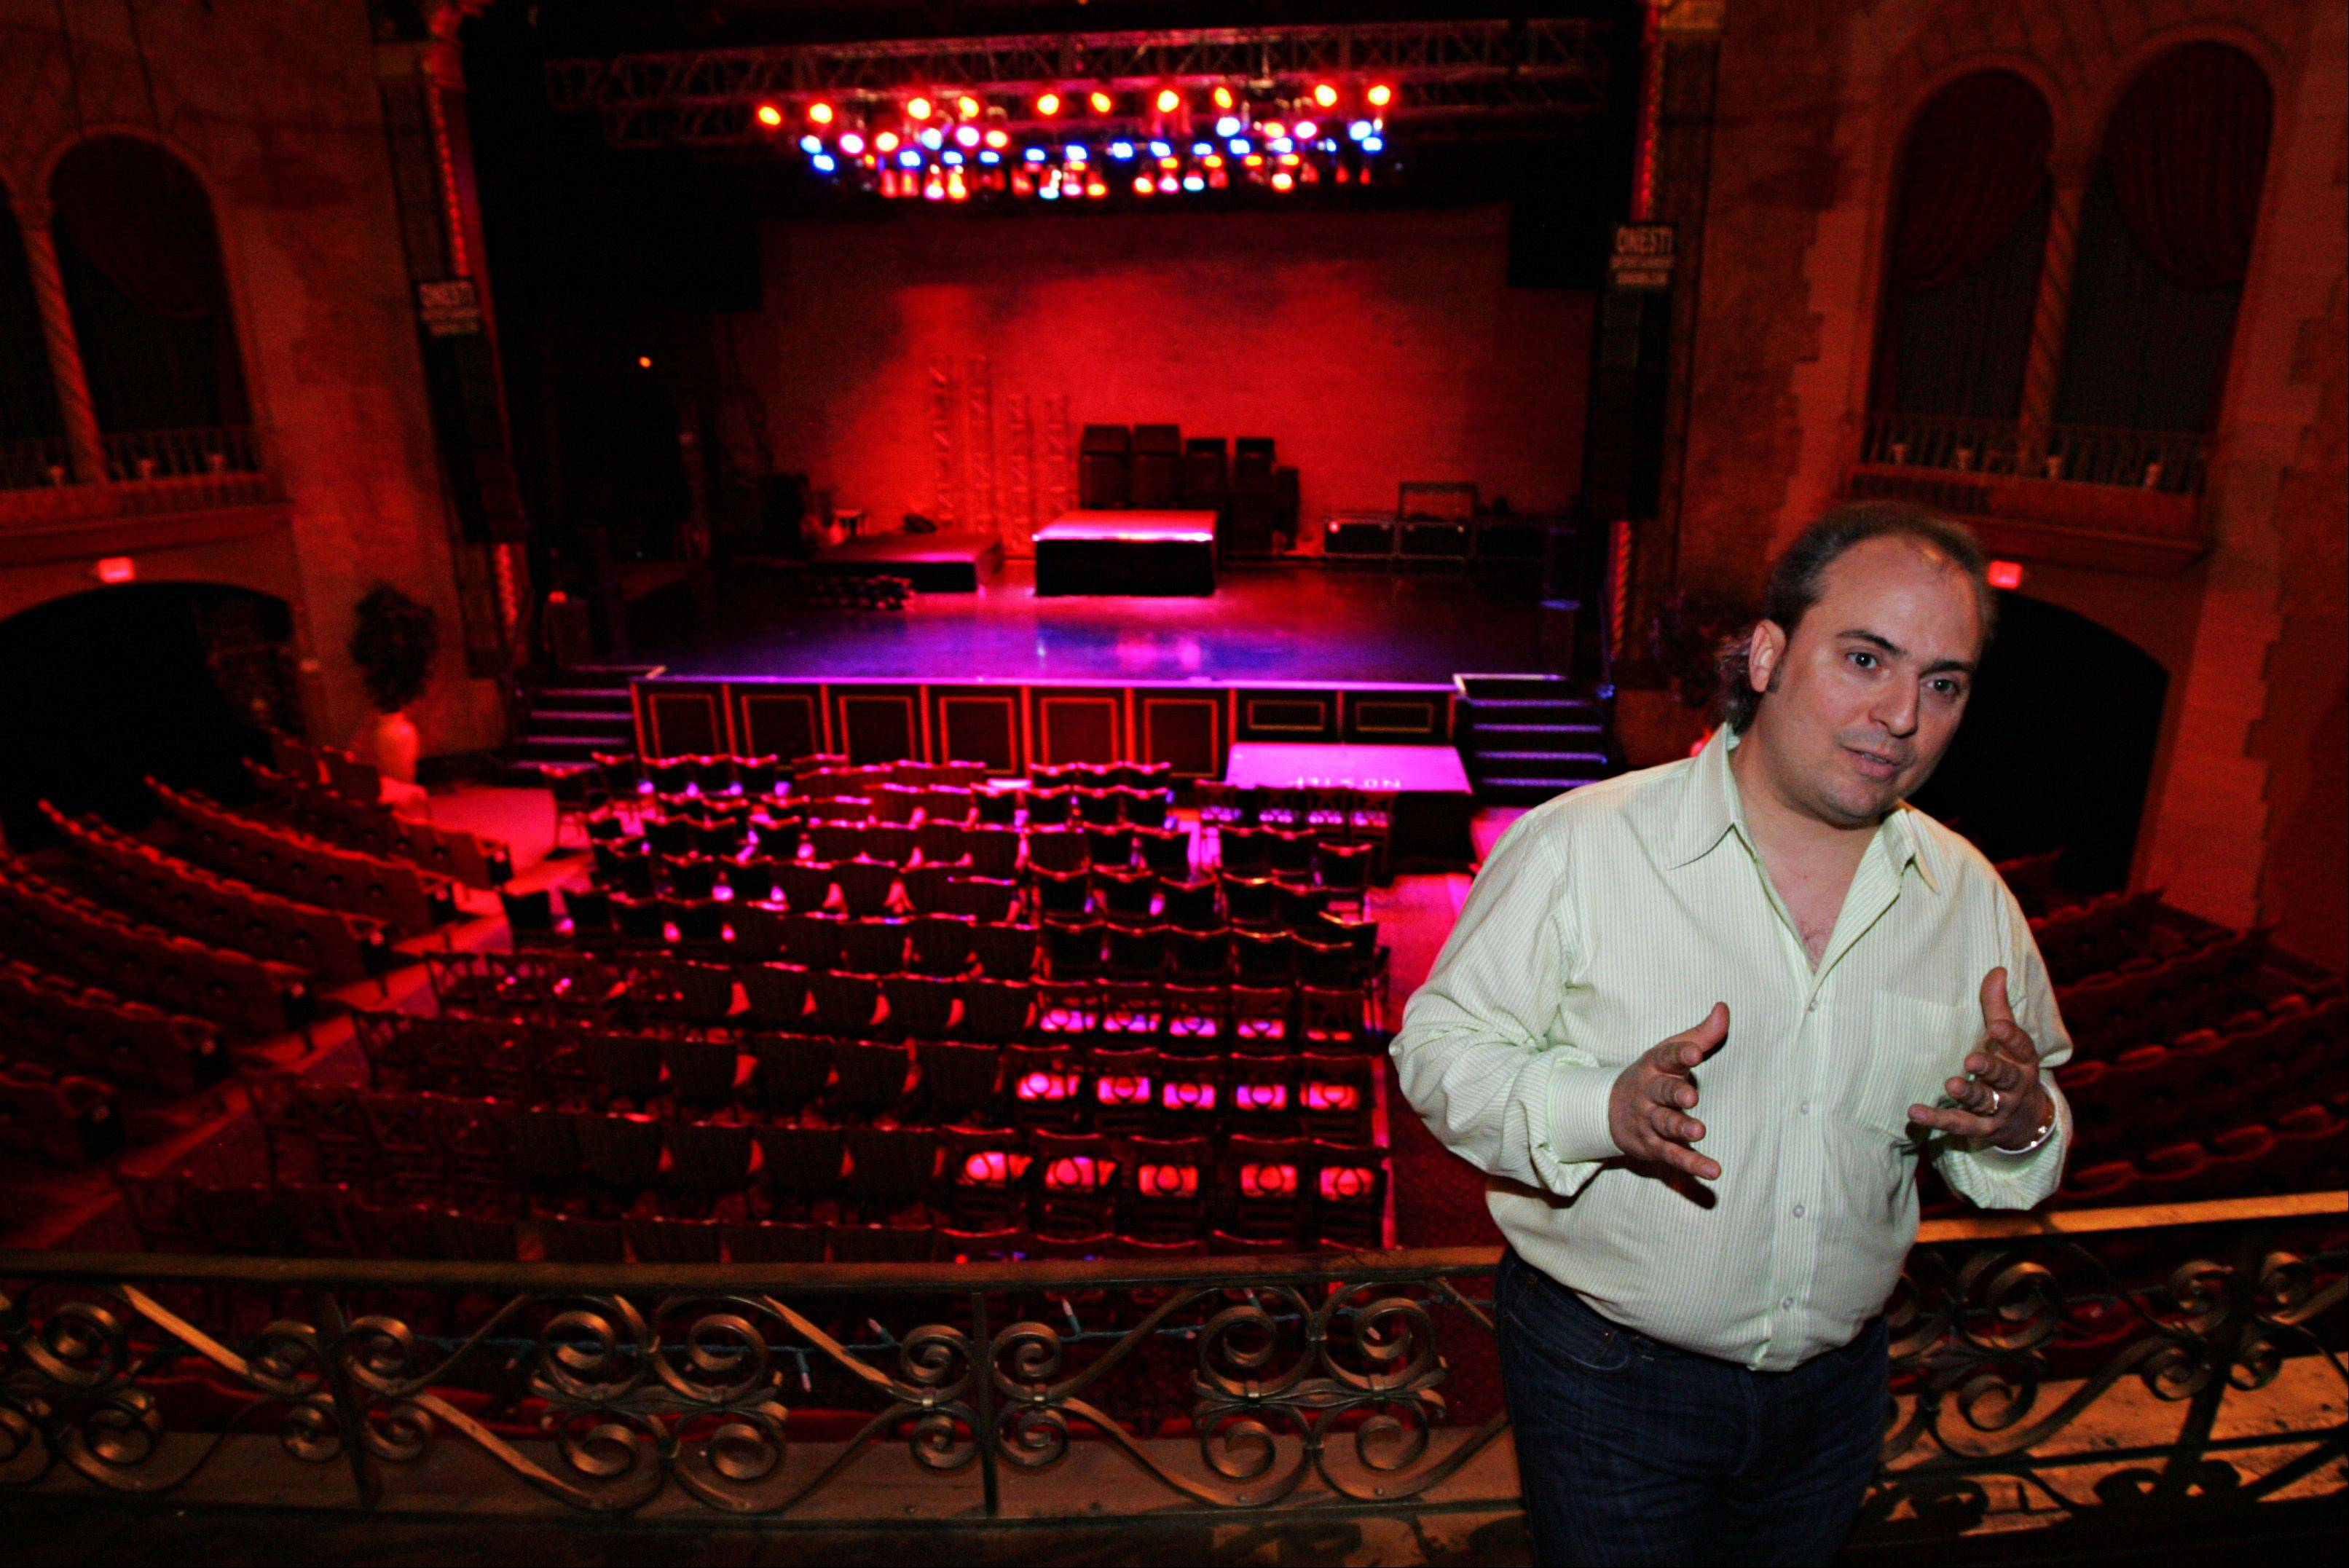 Ron Onesti, owner of the Arcada Theatre in downtown St. Charles, has consistently brought popular acts to that venue, and is now booking musical acts for the Grand Victoria concert series at Festival Park in downtown Elgin. Last month's Joan Jett concert was a major success, according to casino officials. Up next is Grand Funk Railroad and Night Ranger Saturday night at Festival Park.